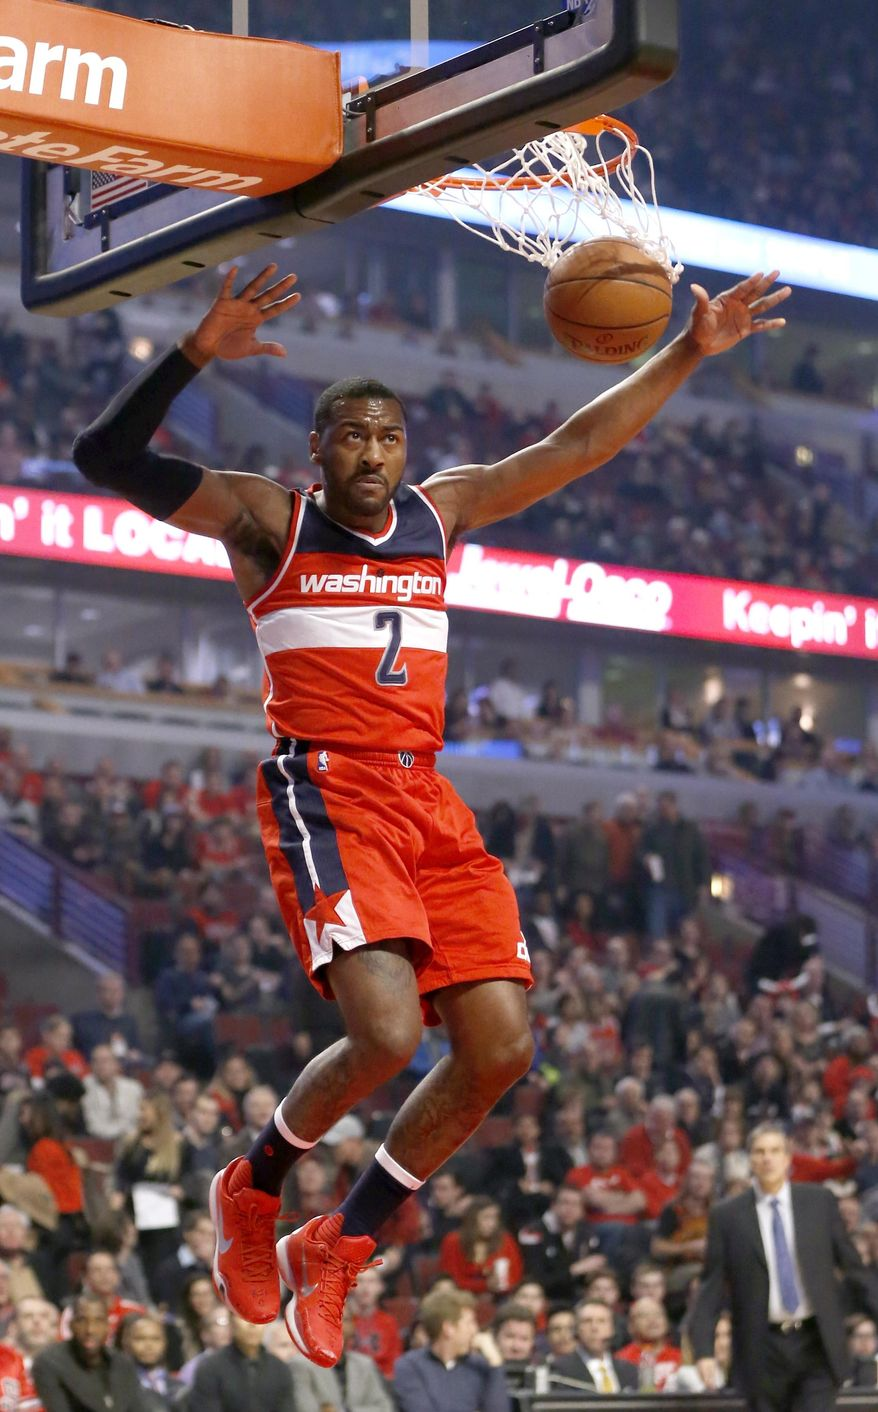 Washington Wizards guard John Wall dunks the ball during the first half of an NBA basketball game against the Chicago Bulls, Monday, Jan. 11, 2016, in Chicago. (AP Photo/Charles Rex Arbogast)